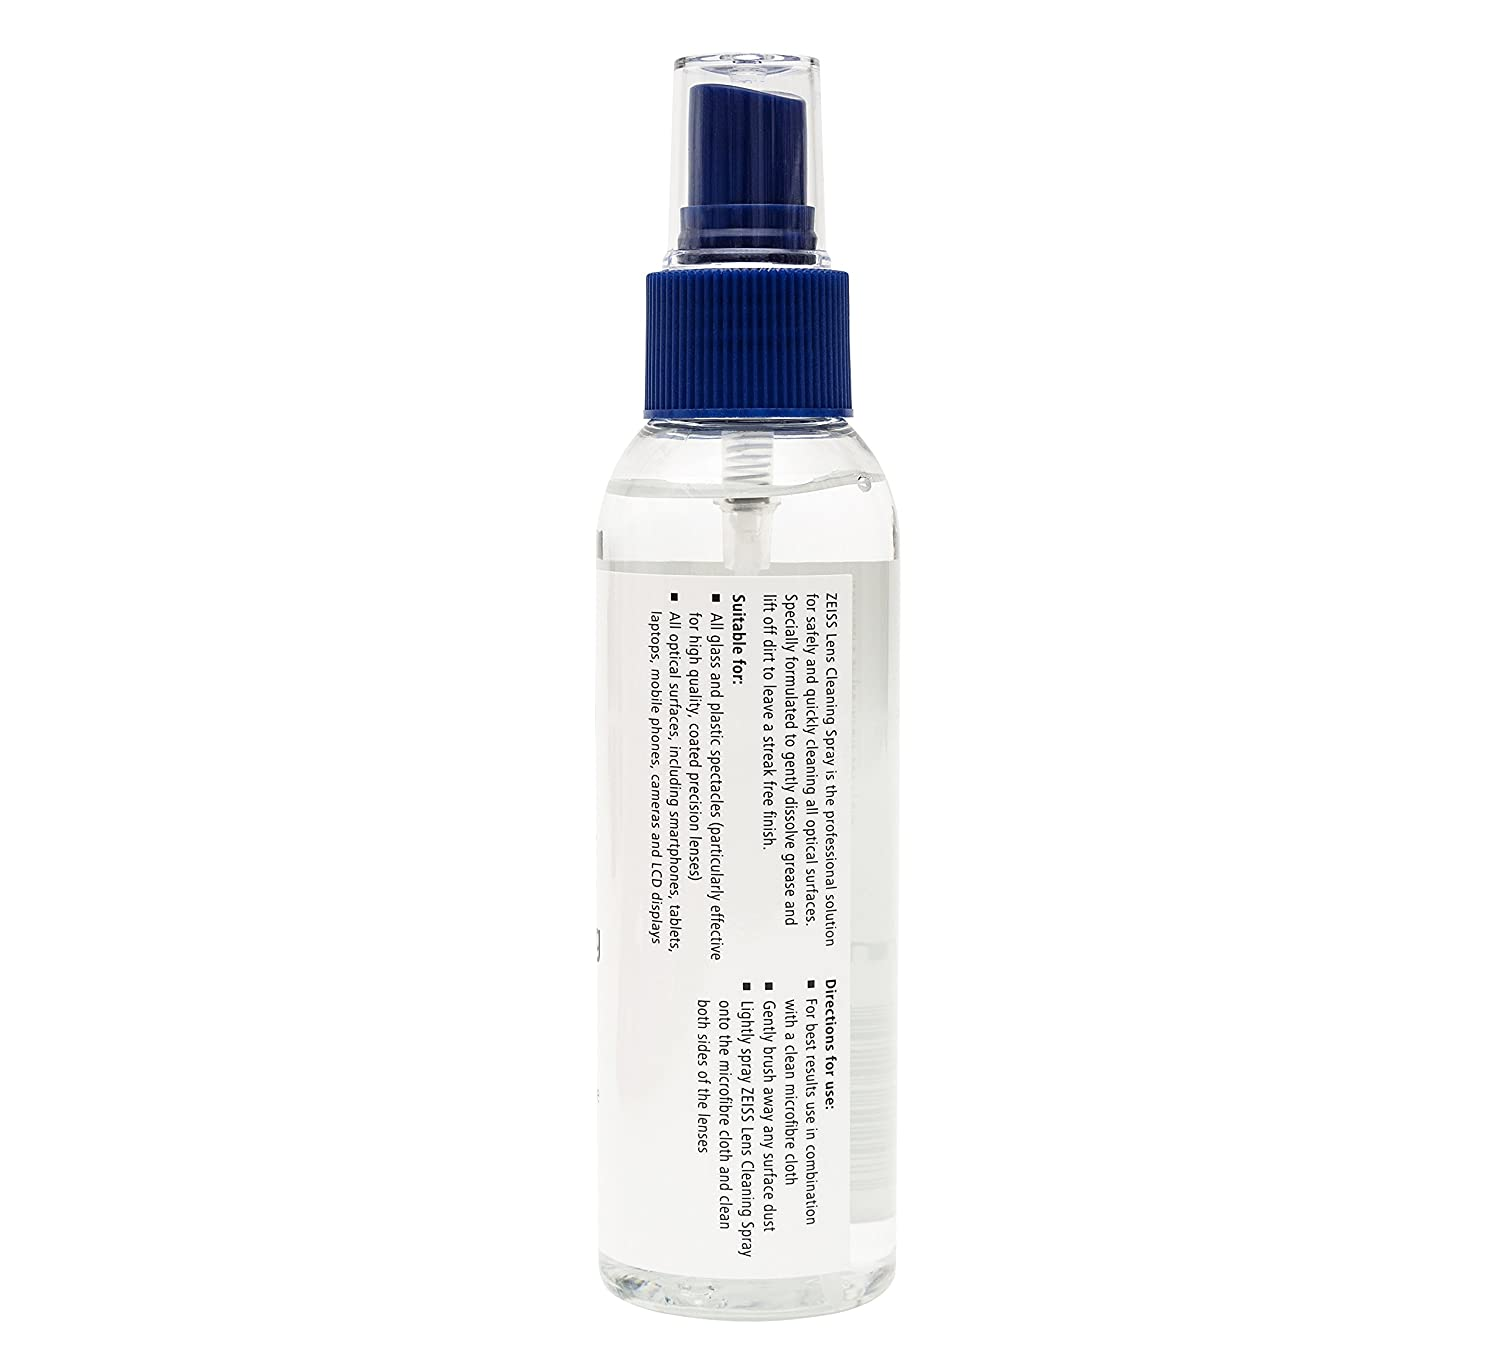 d6665f54f2 ZEISS Lens Cleaning Spray (2x120ml)  Amazon.co.uk  Health   Personal Care